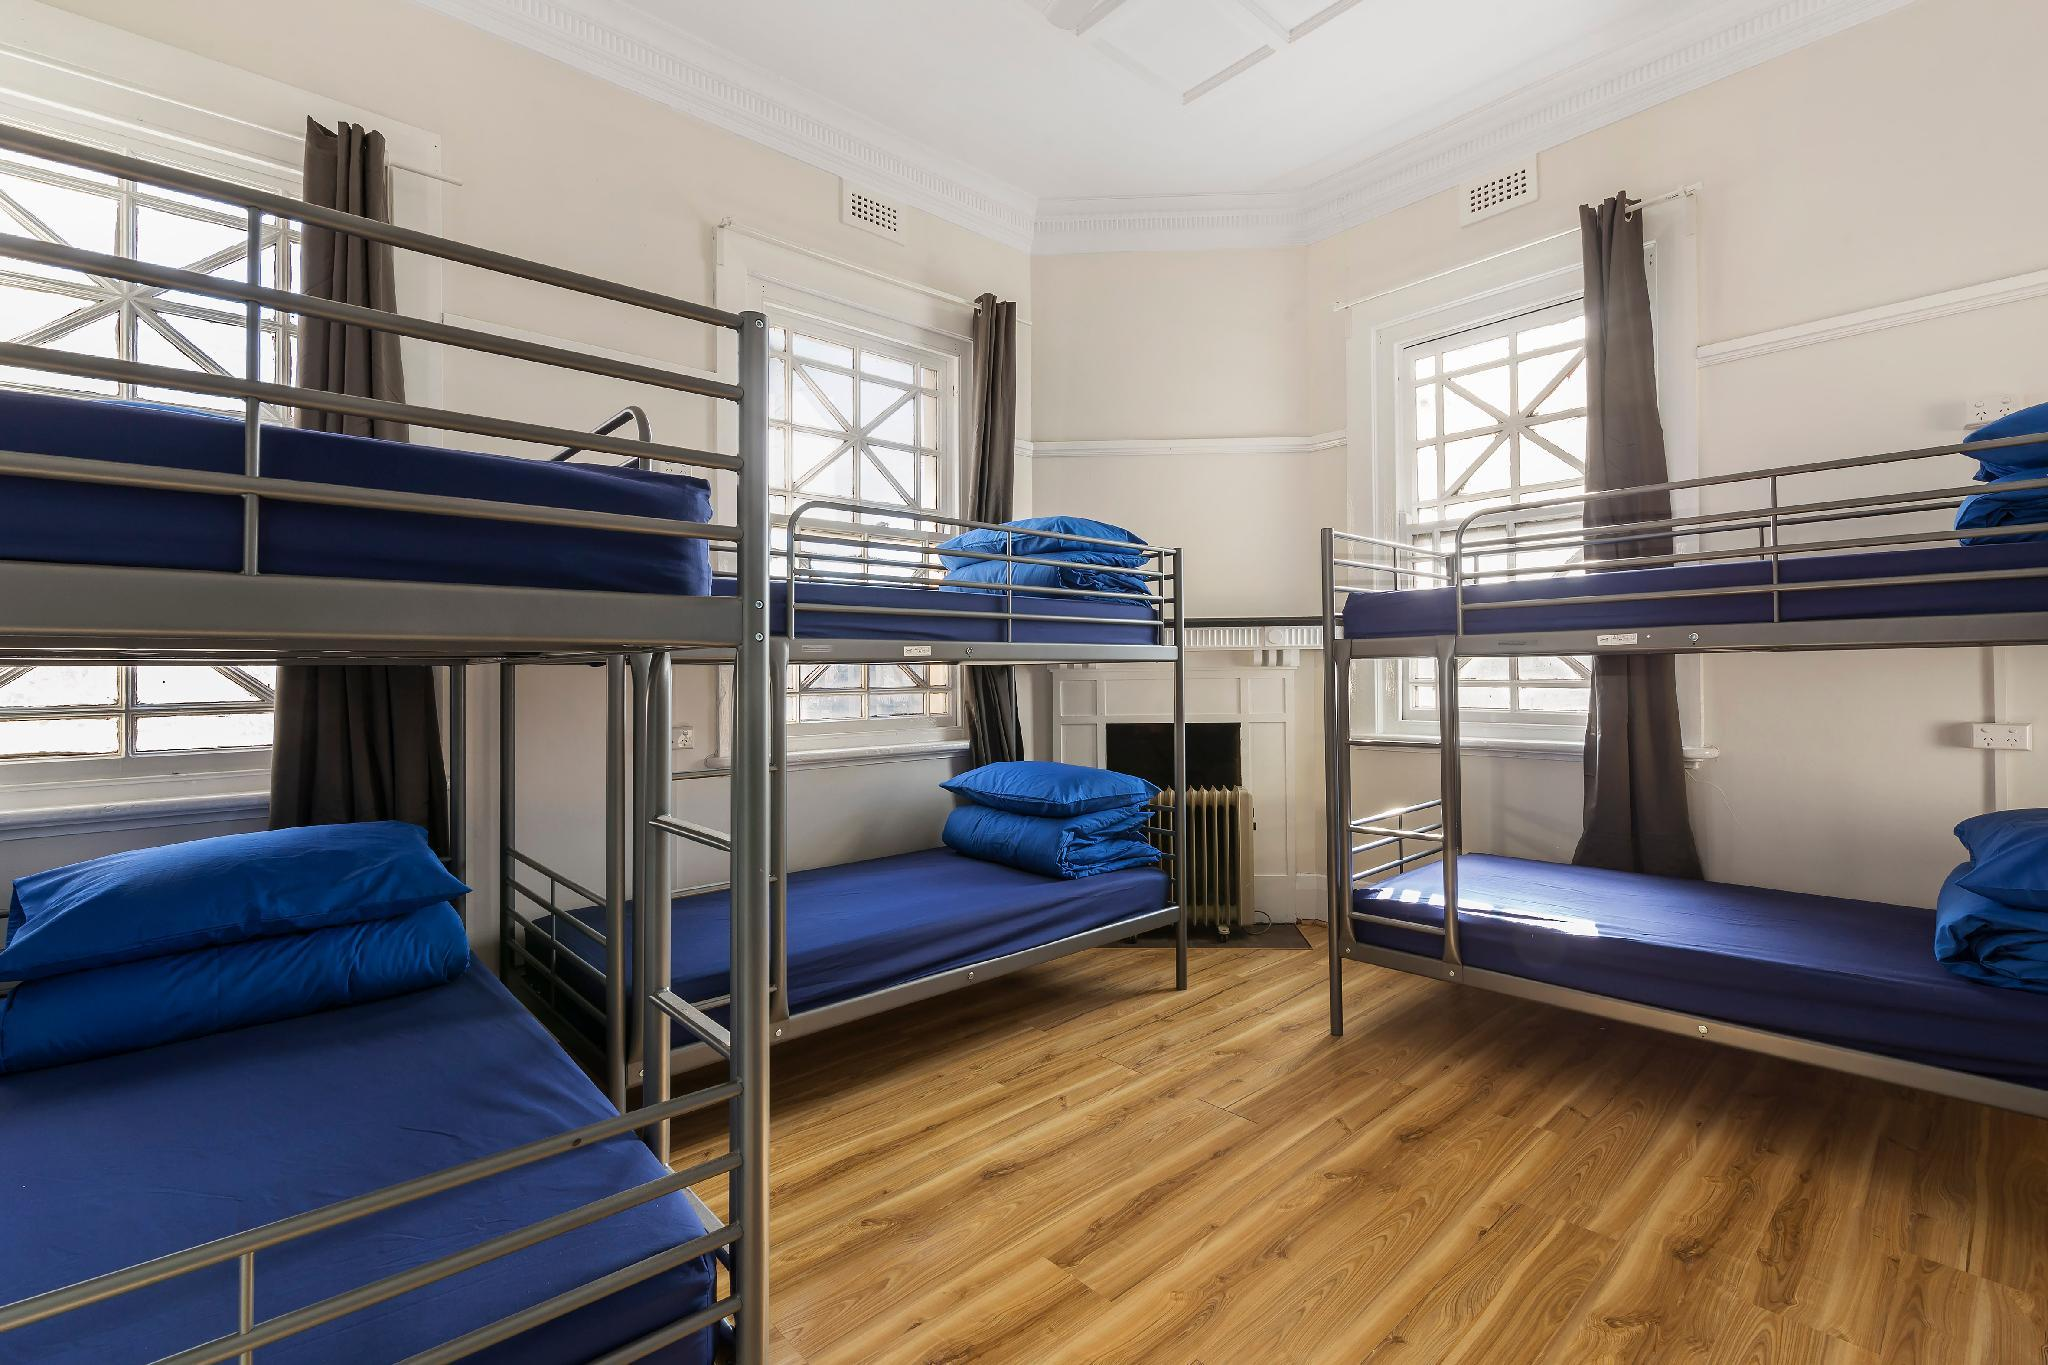 1 Person in 16-Bed Dormitory with Shared Bathroom - Mixed